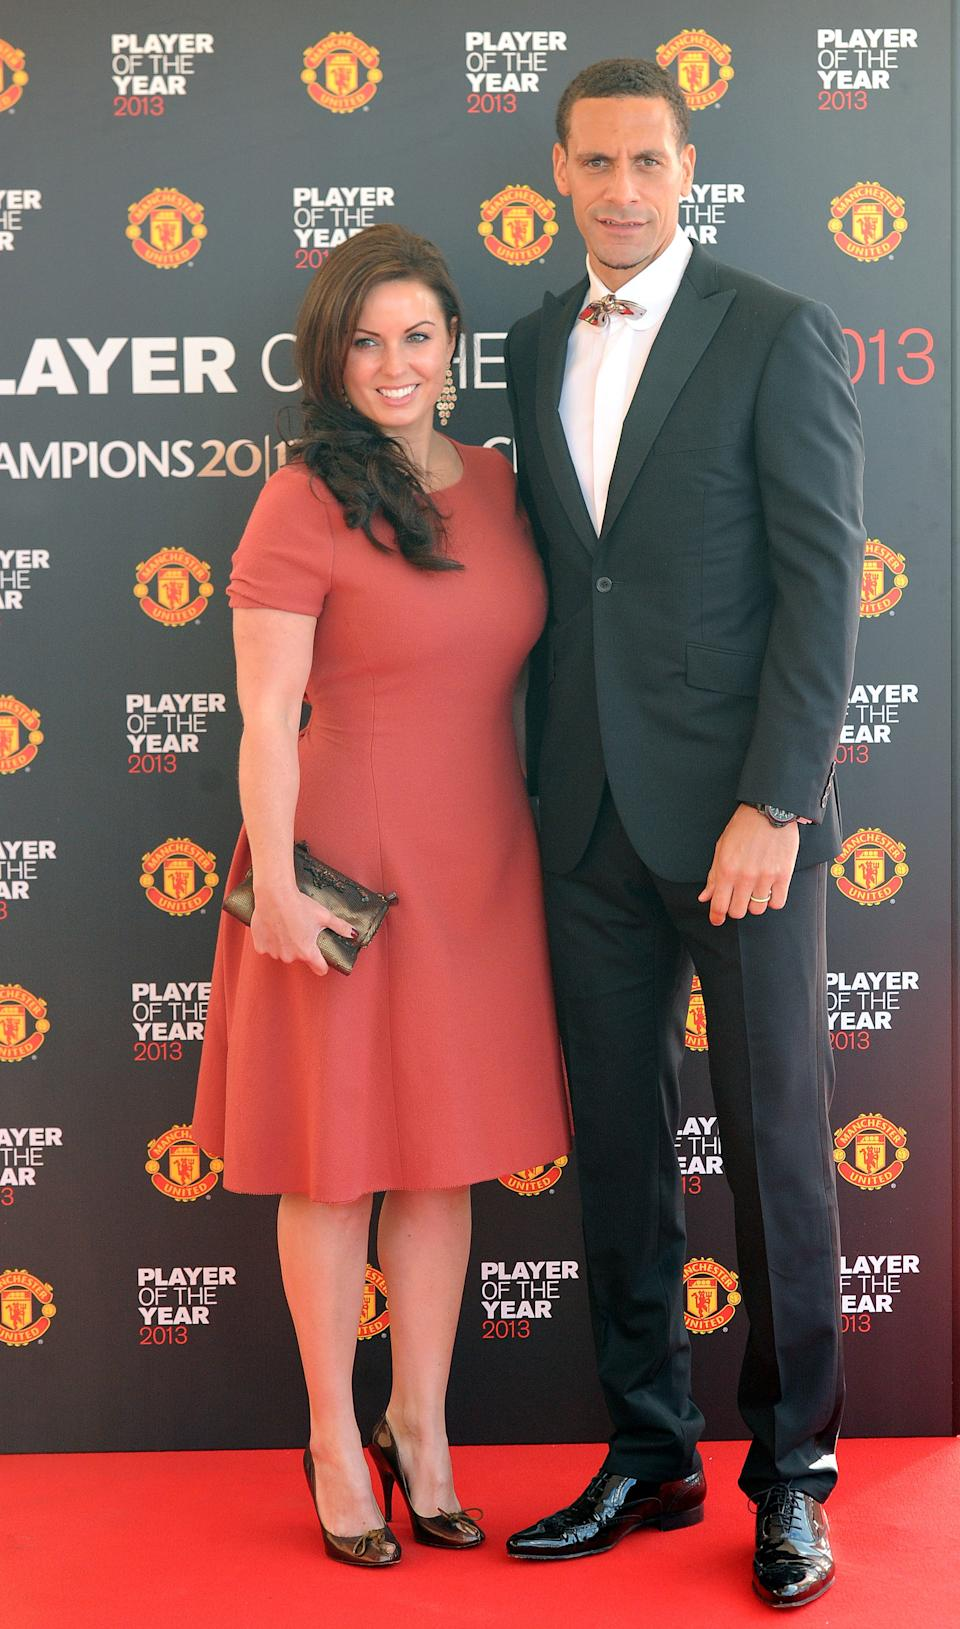 Manchester United's Rio Ferdinand with wife Rebecca Ellison arrive for the Manchester United Player of the Year Awards at Old Trafford, Manchester.